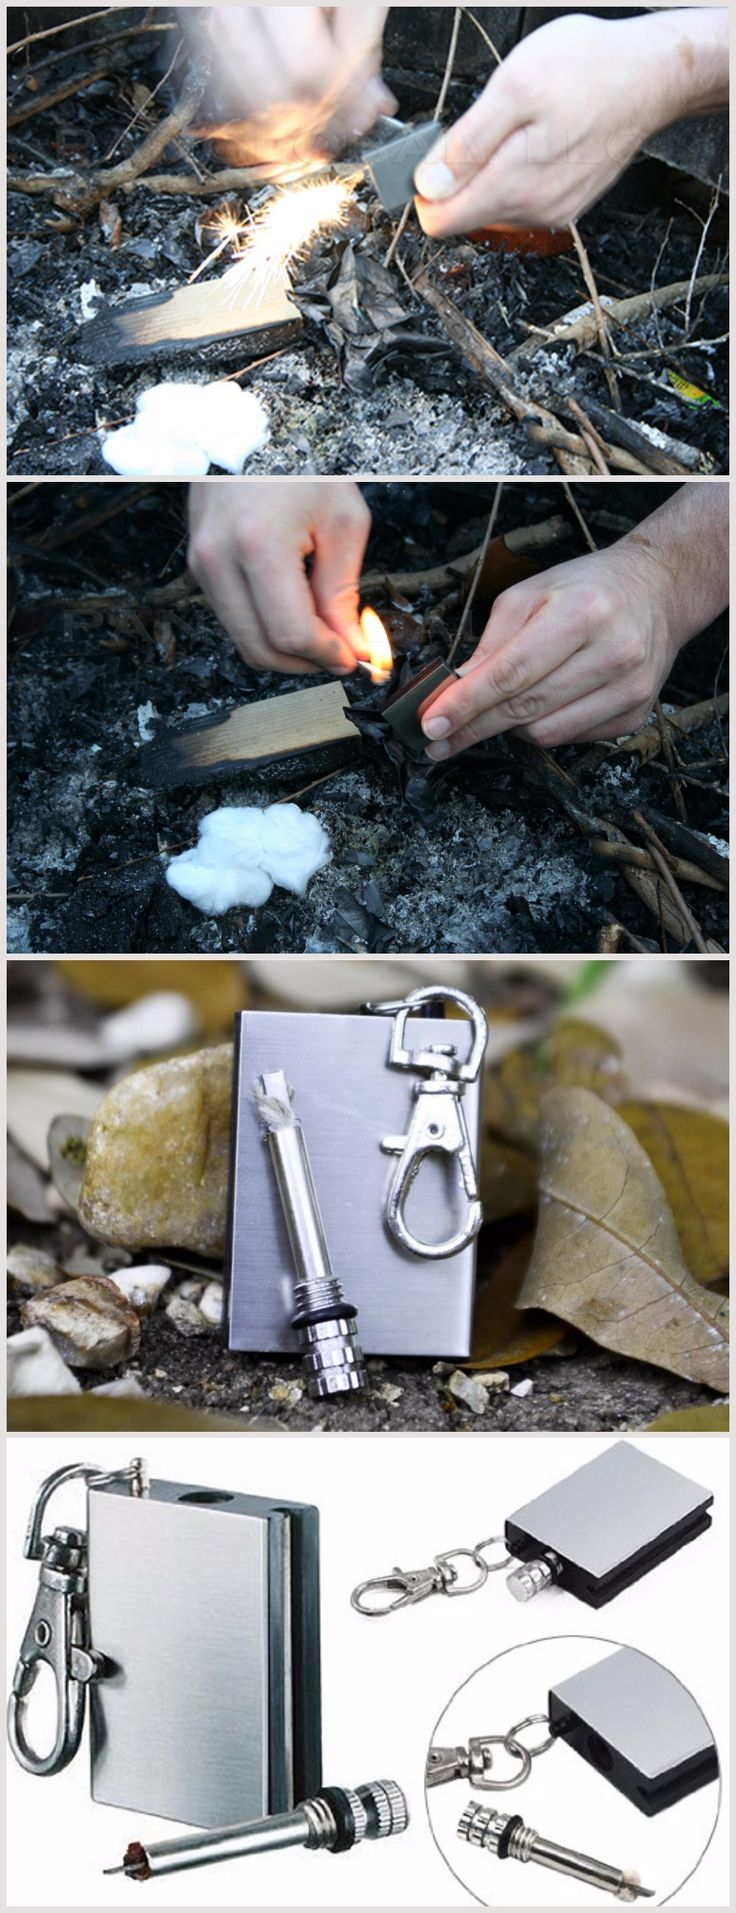 WATERPROOF EDC EMERGENCY SURVIVAL FIRE STARTER KIT FOR FREE! - Everyday Carry Gear